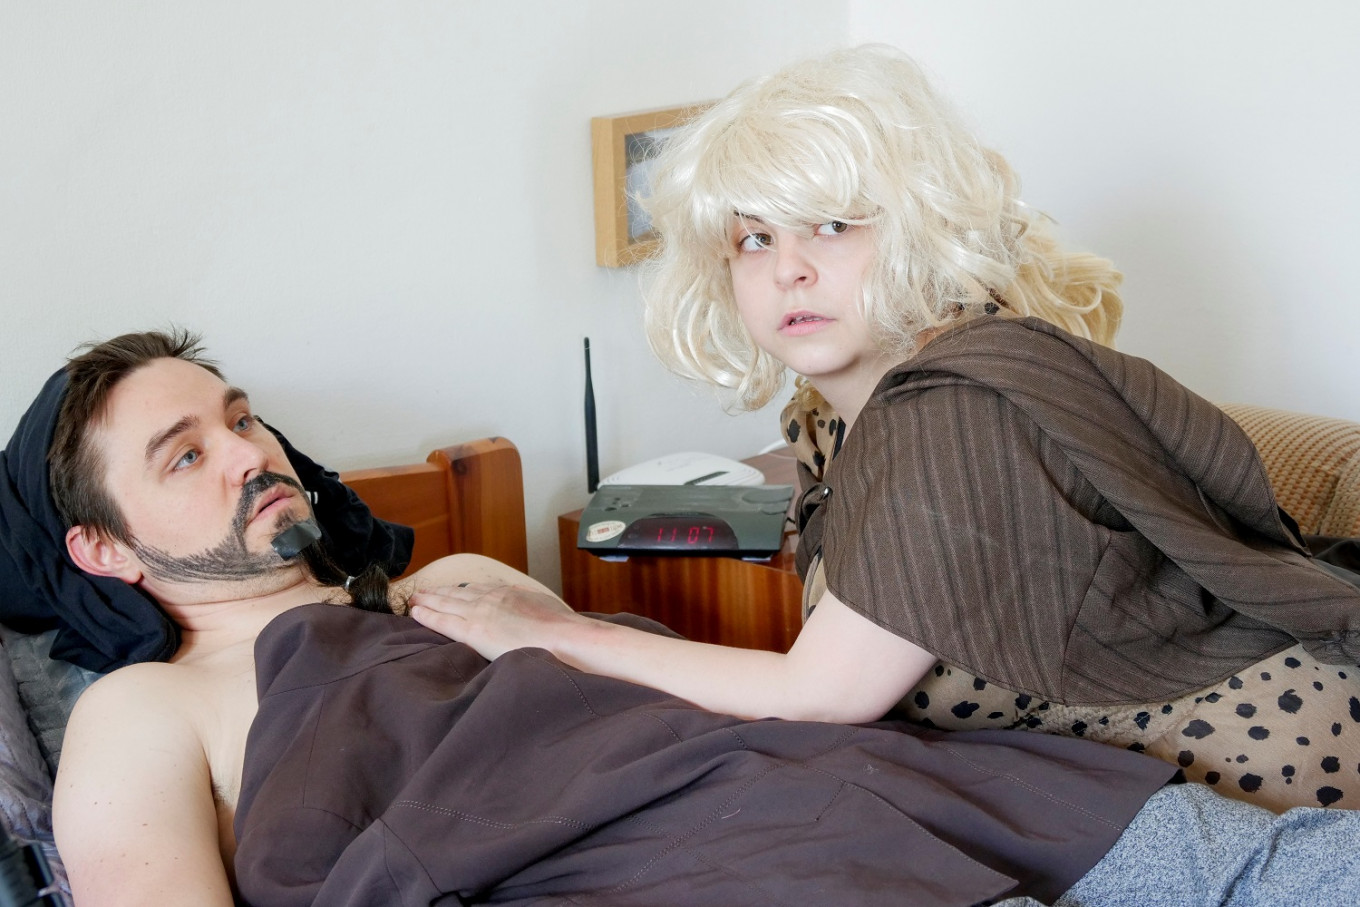 Hungarian couple recreate scenes from 'Game of Thrones', 'Ghost' during lockdown